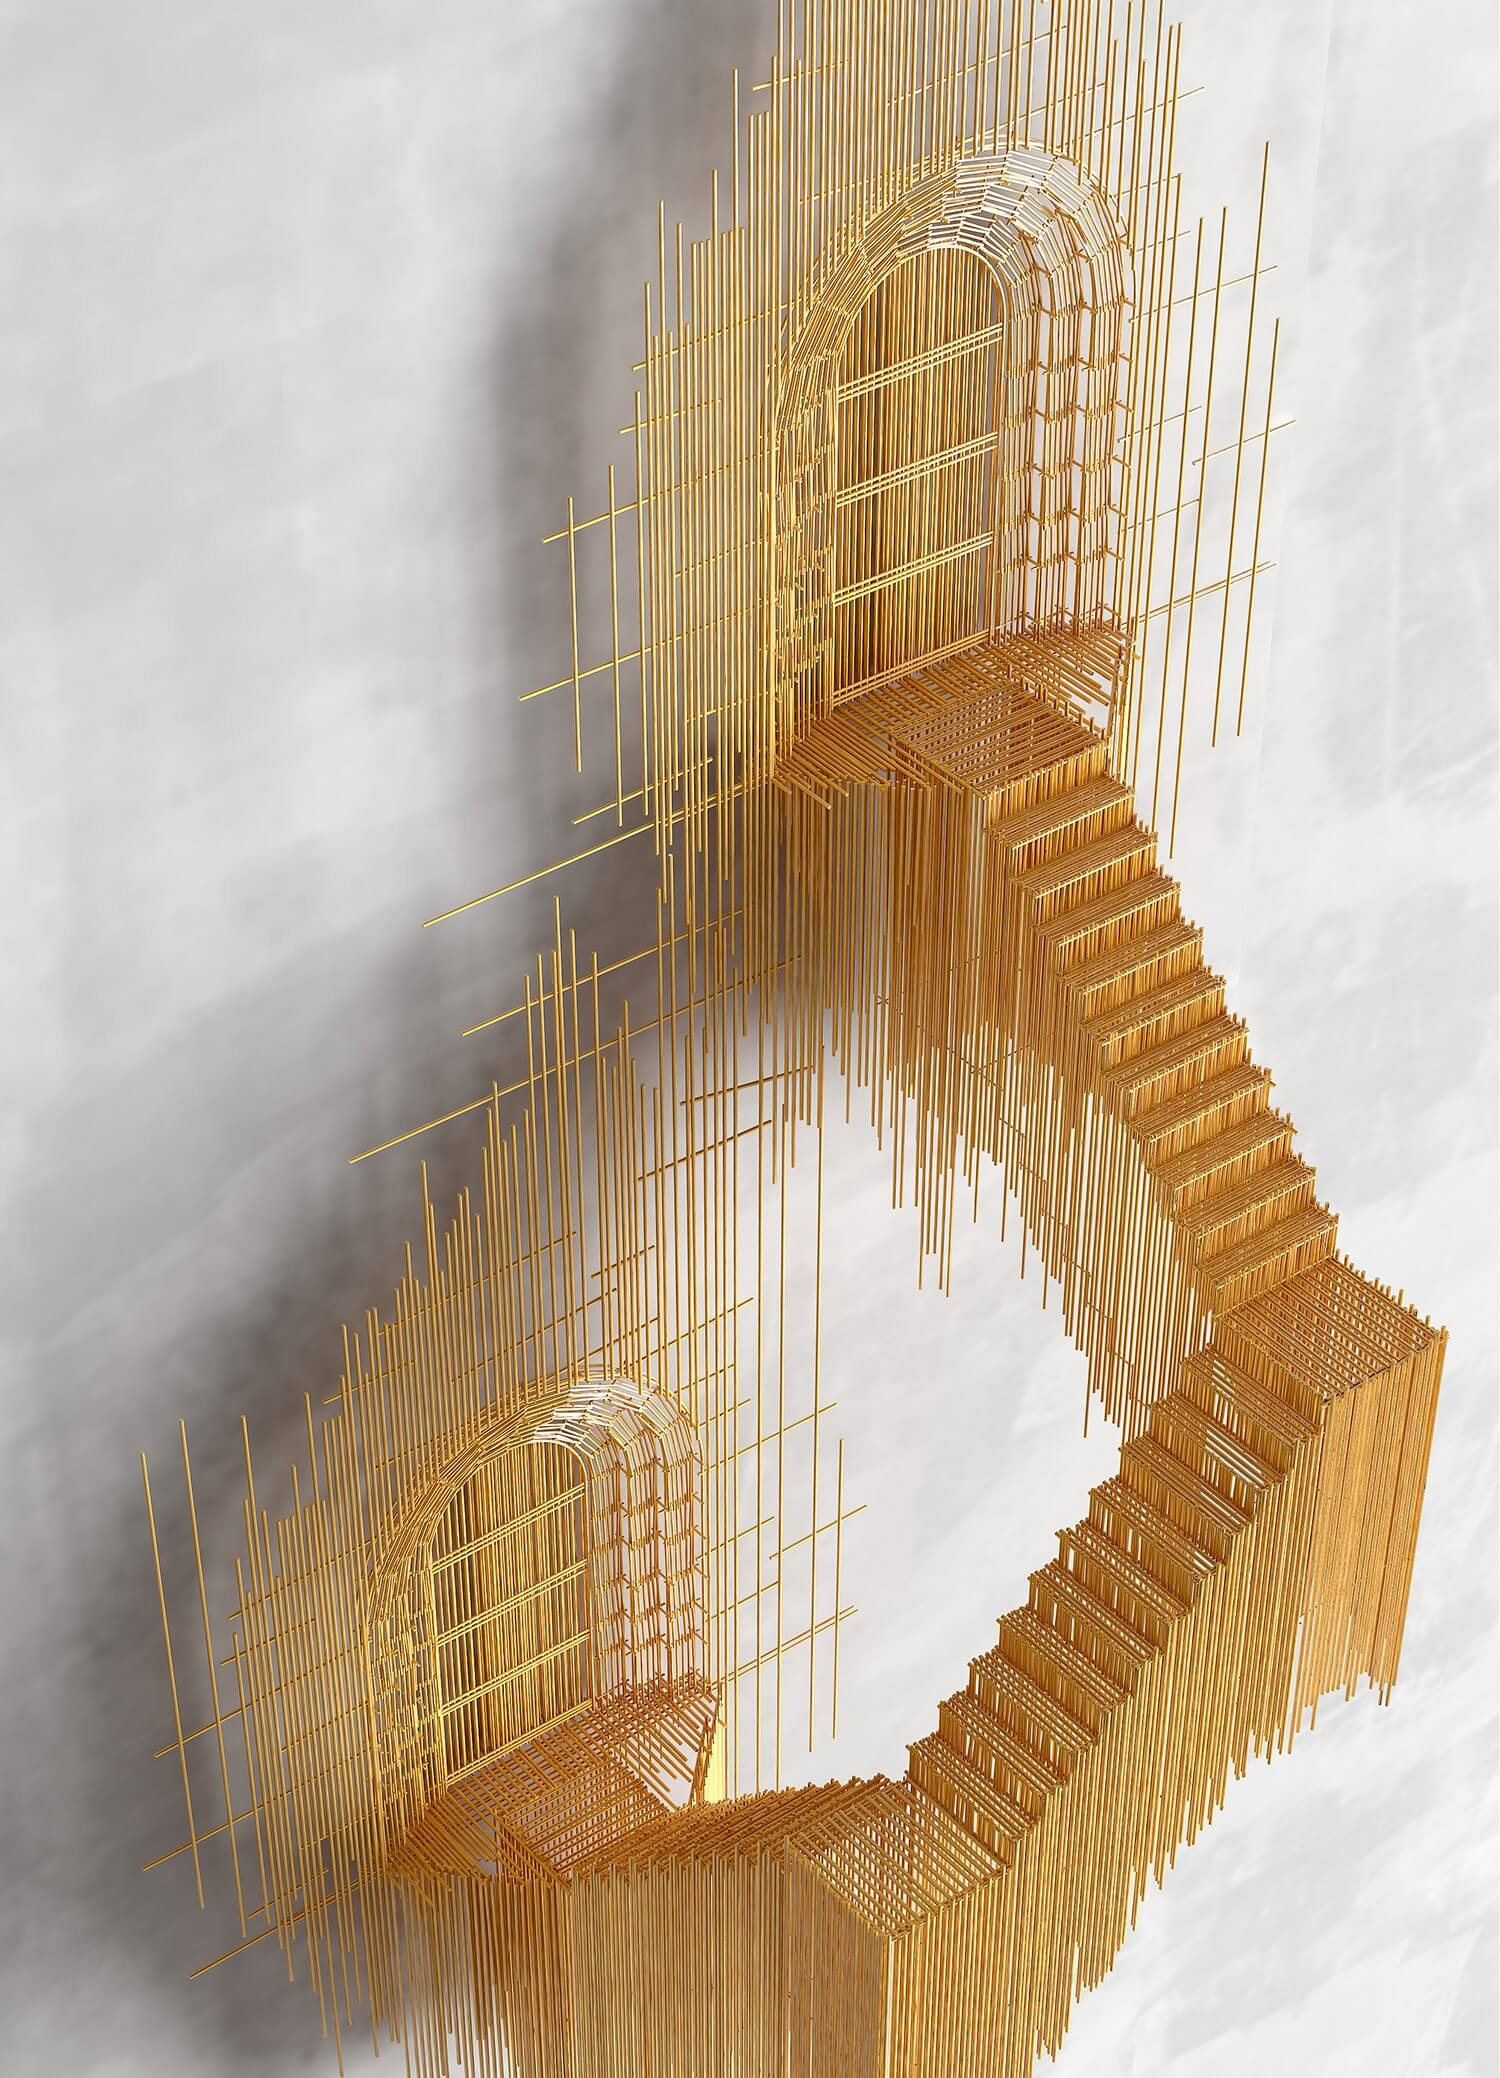 david moreno floating cities 4 (1)